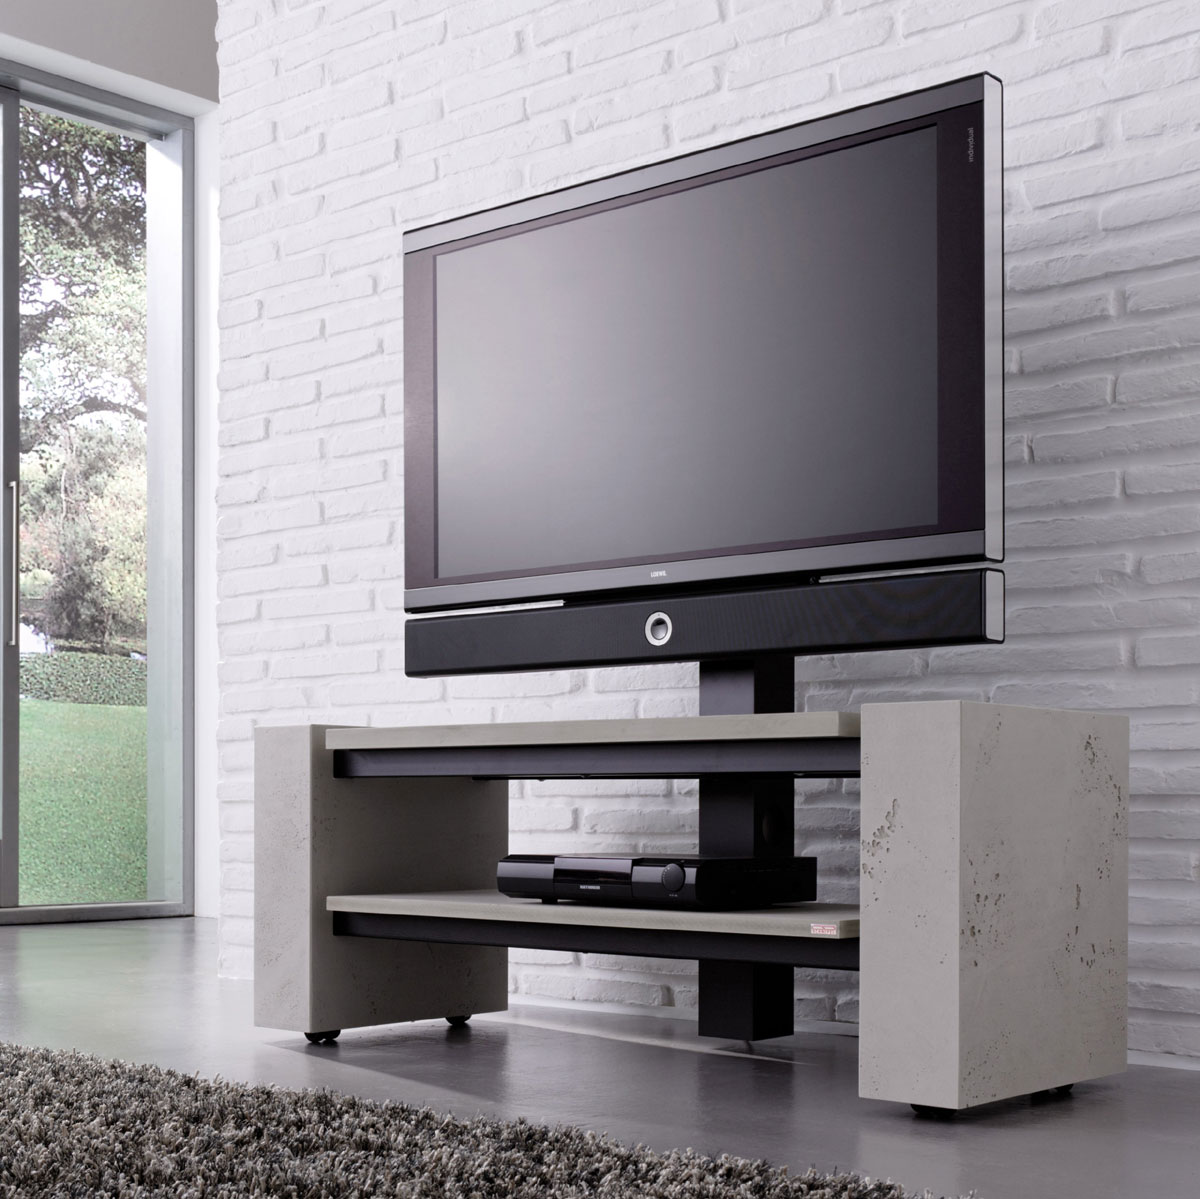 schnepel x line archive tv m bel und hifi m bel guide. Black Bedroom Furniture Sets. Home Design Ideas